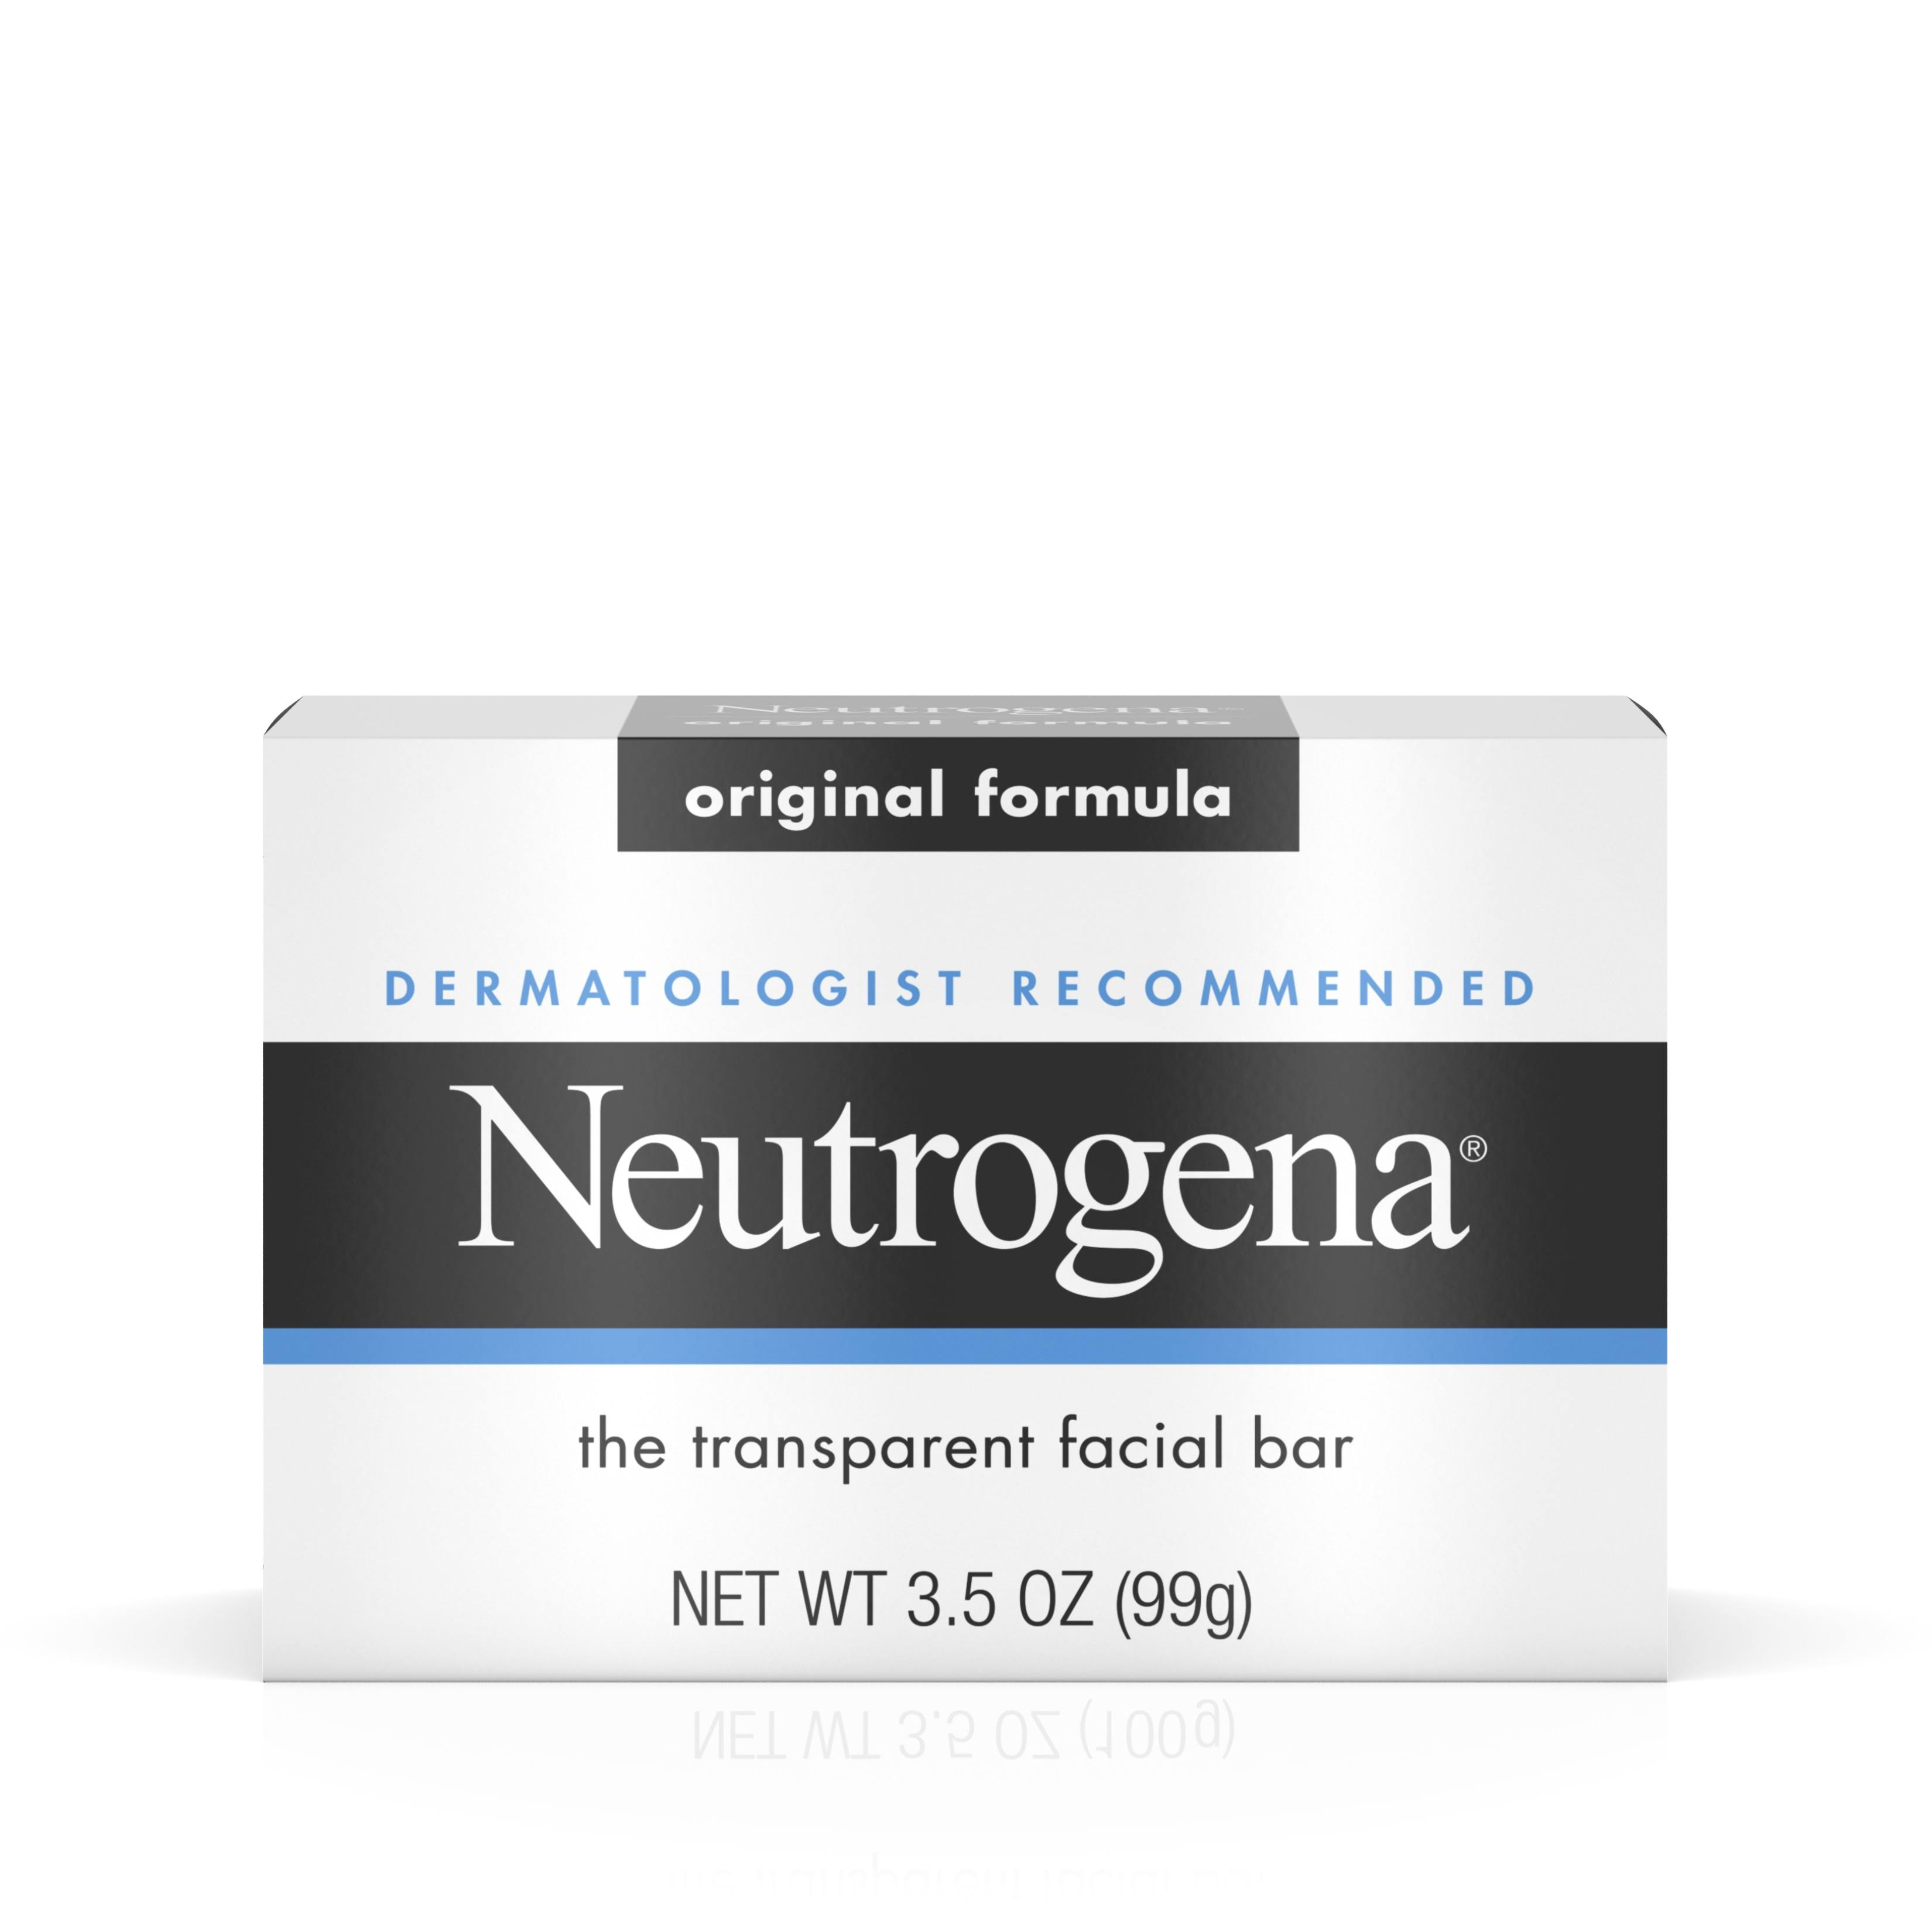 Neutrogena Transparent Facial Bar - Original, 100g